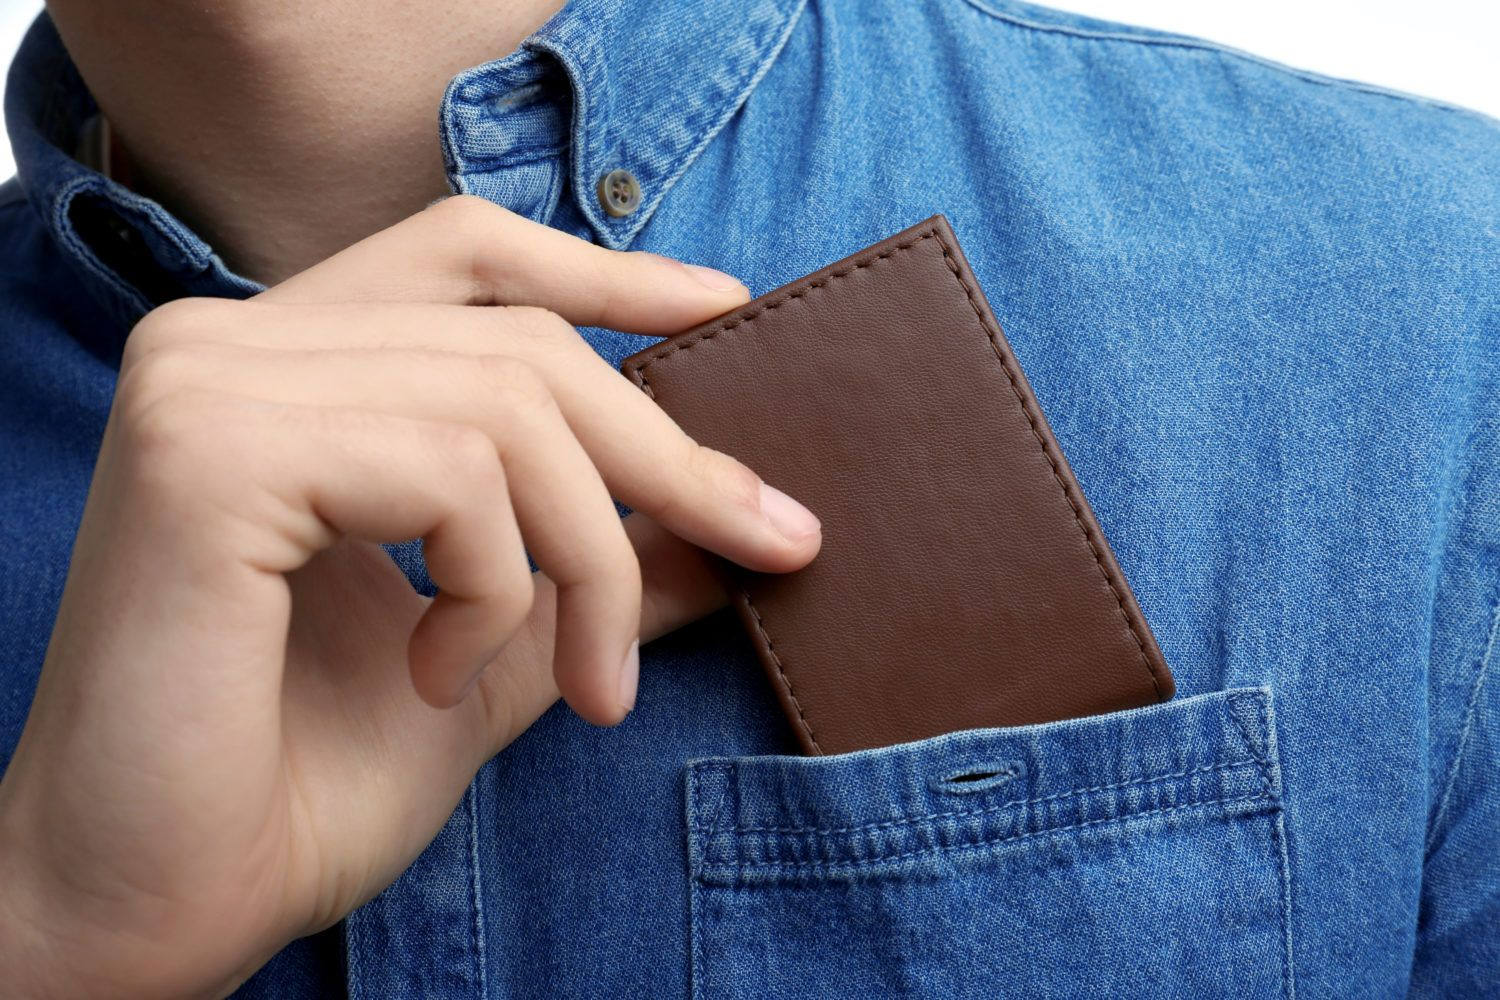 3 Big Reasons to Make Small Purchases With Your Credit